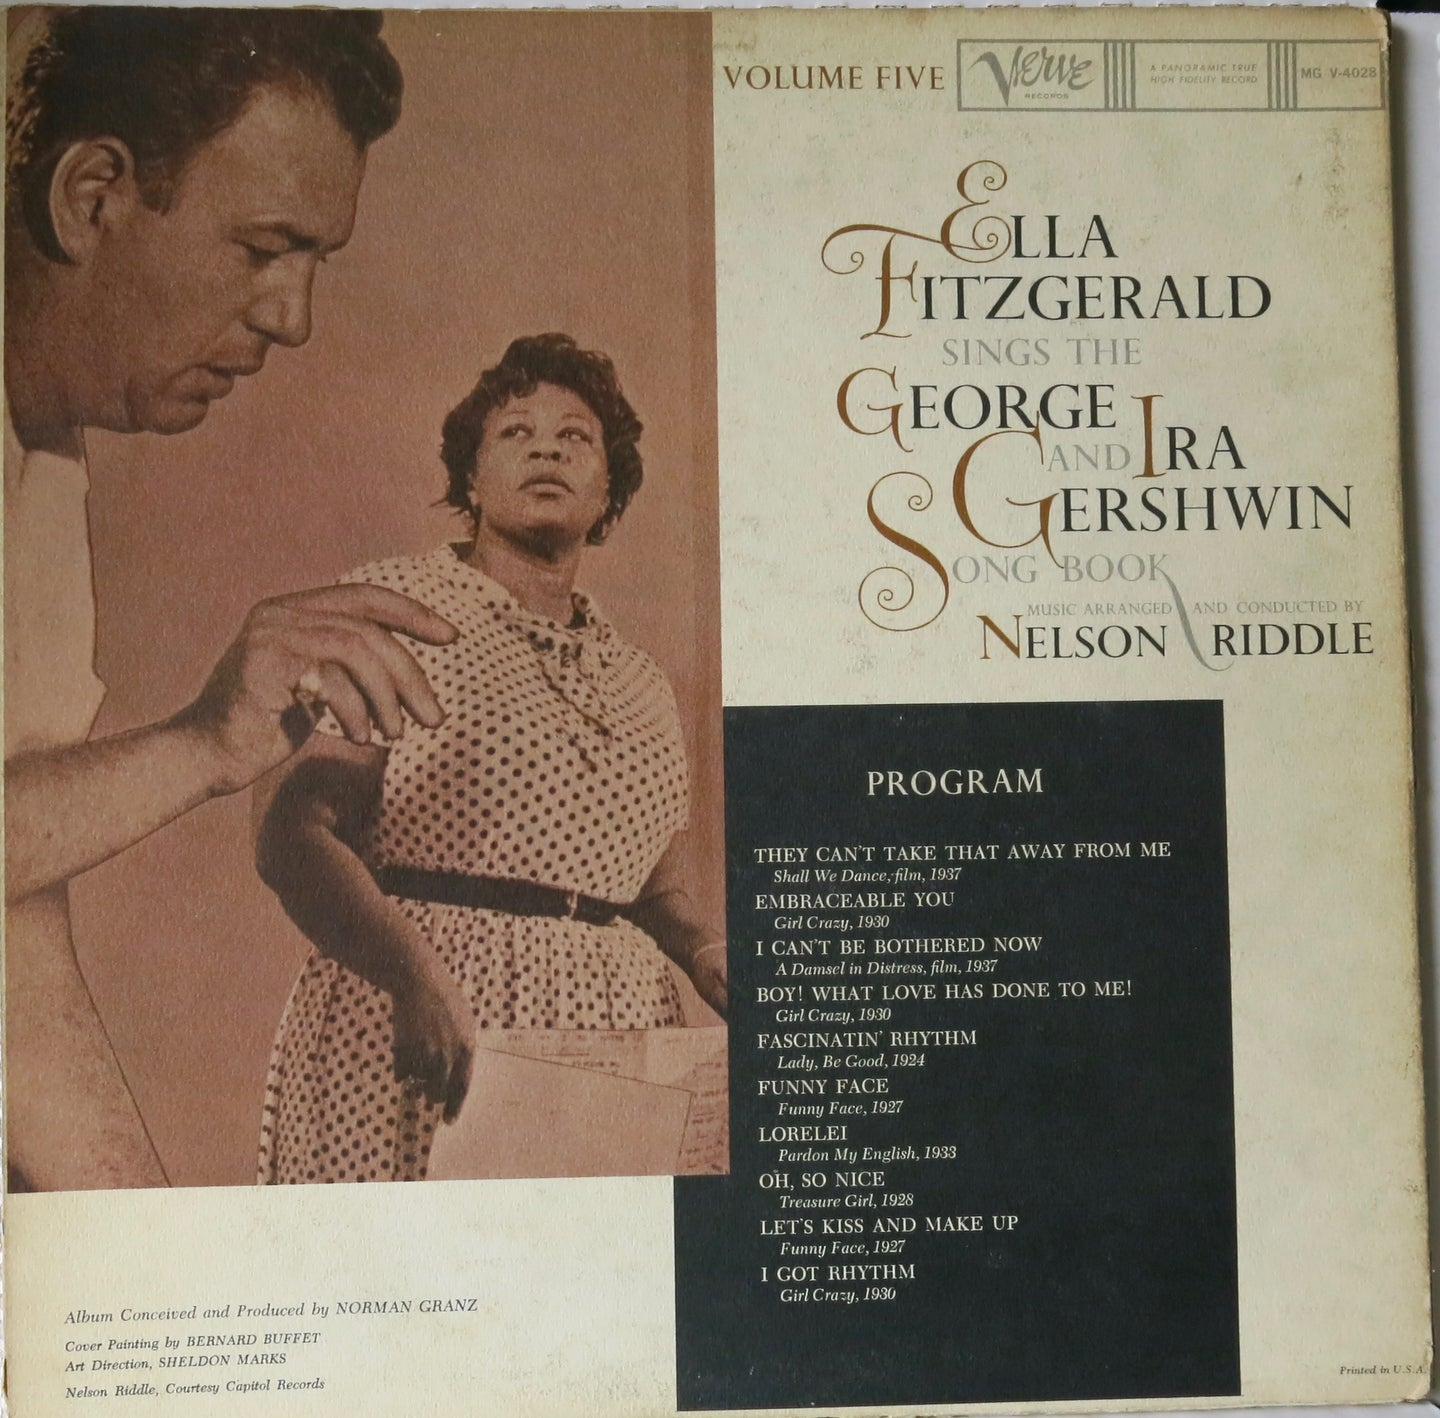 Ella Fitzgerald Sings The George & Ira Gershwin Song Book Vol. 5